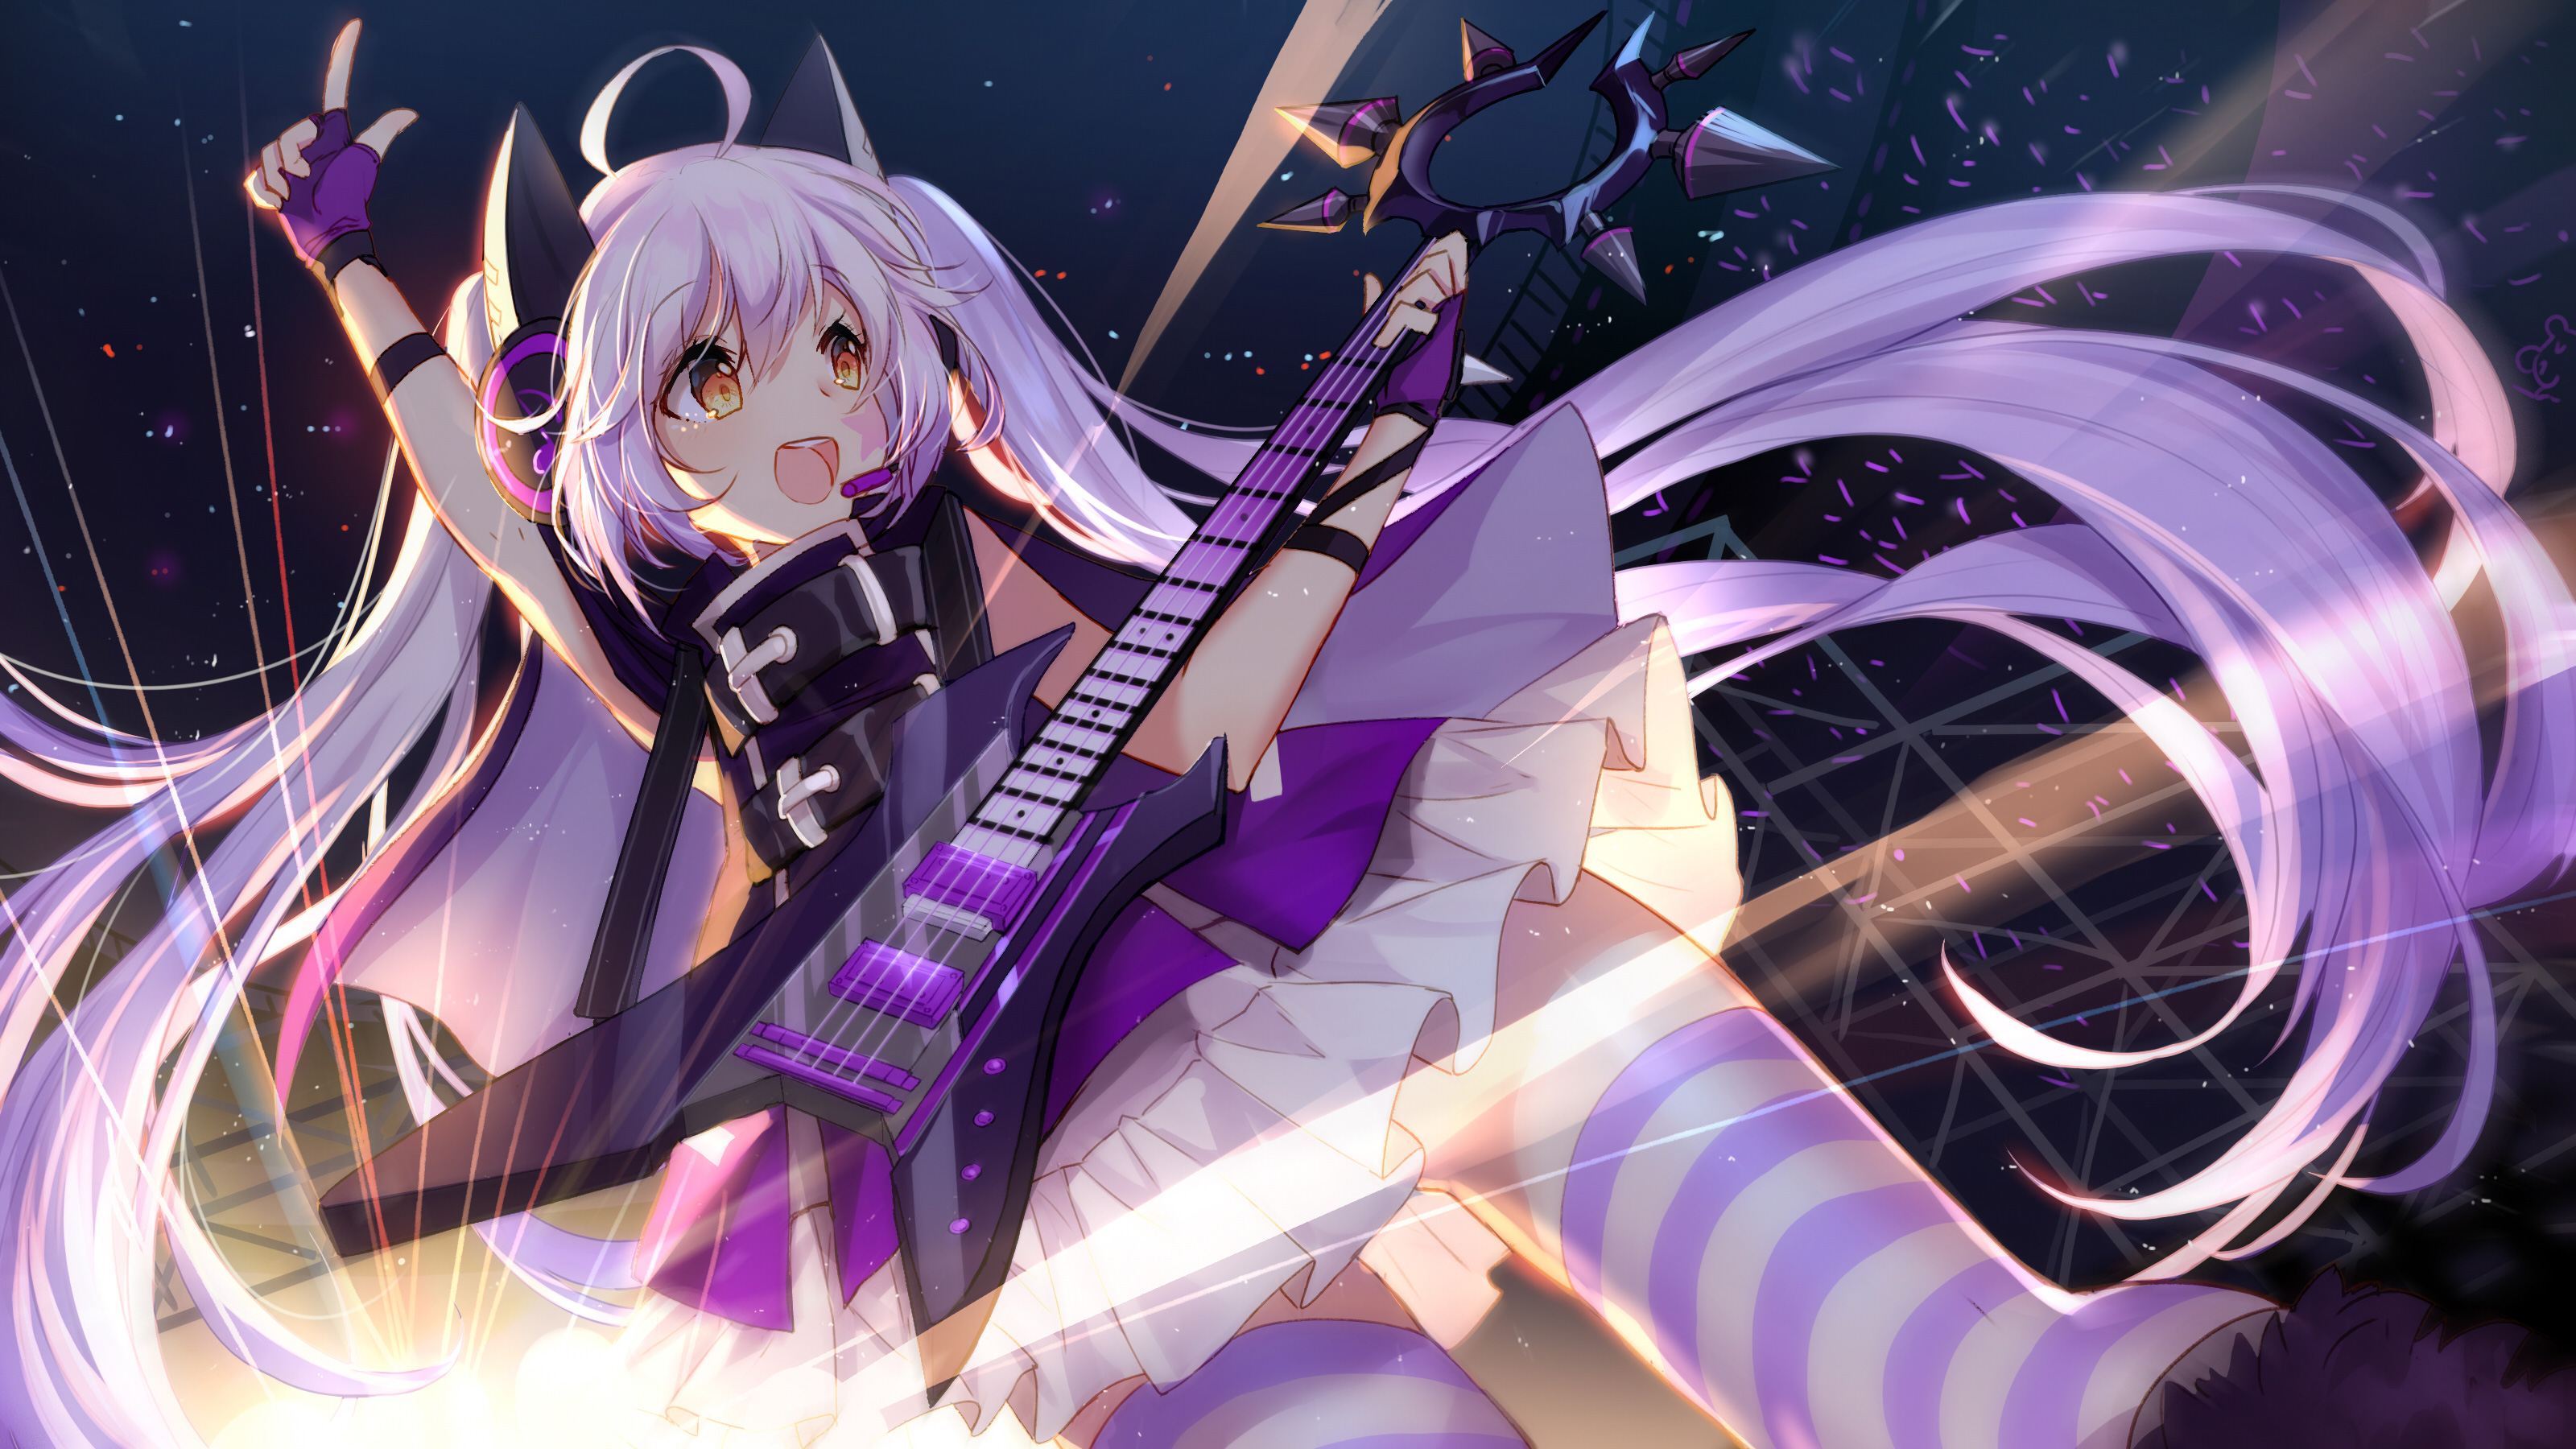 Anime Girl Concert 4k, HD Anime, 4k Wallpapers, Images, Backgrounds, Photos and Pictures